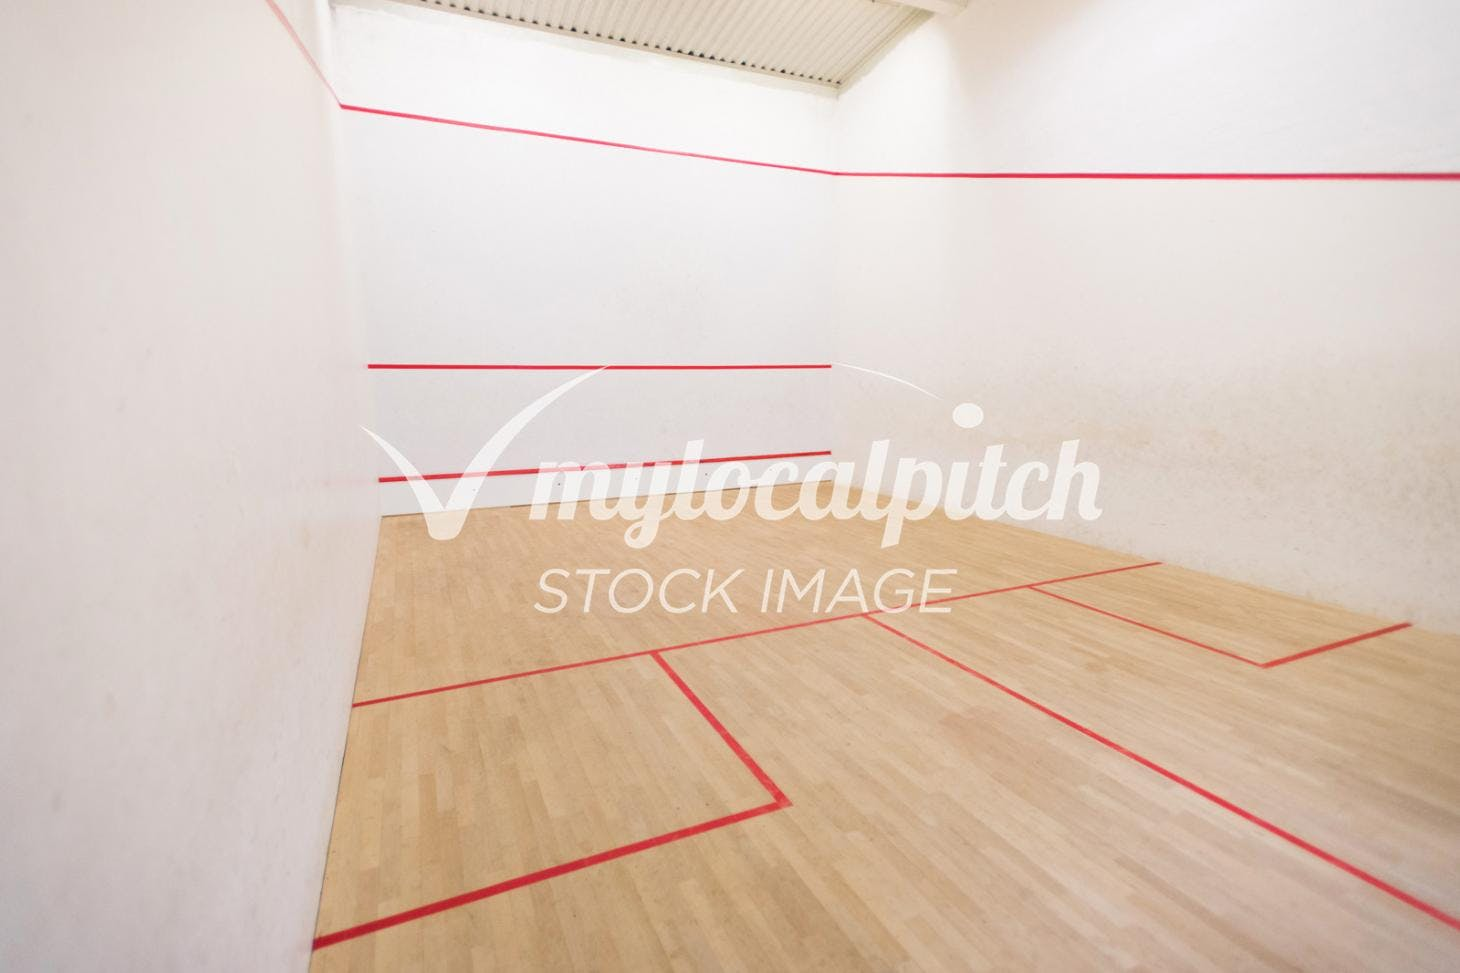 PureGym Purley Indoor | Hard squash court